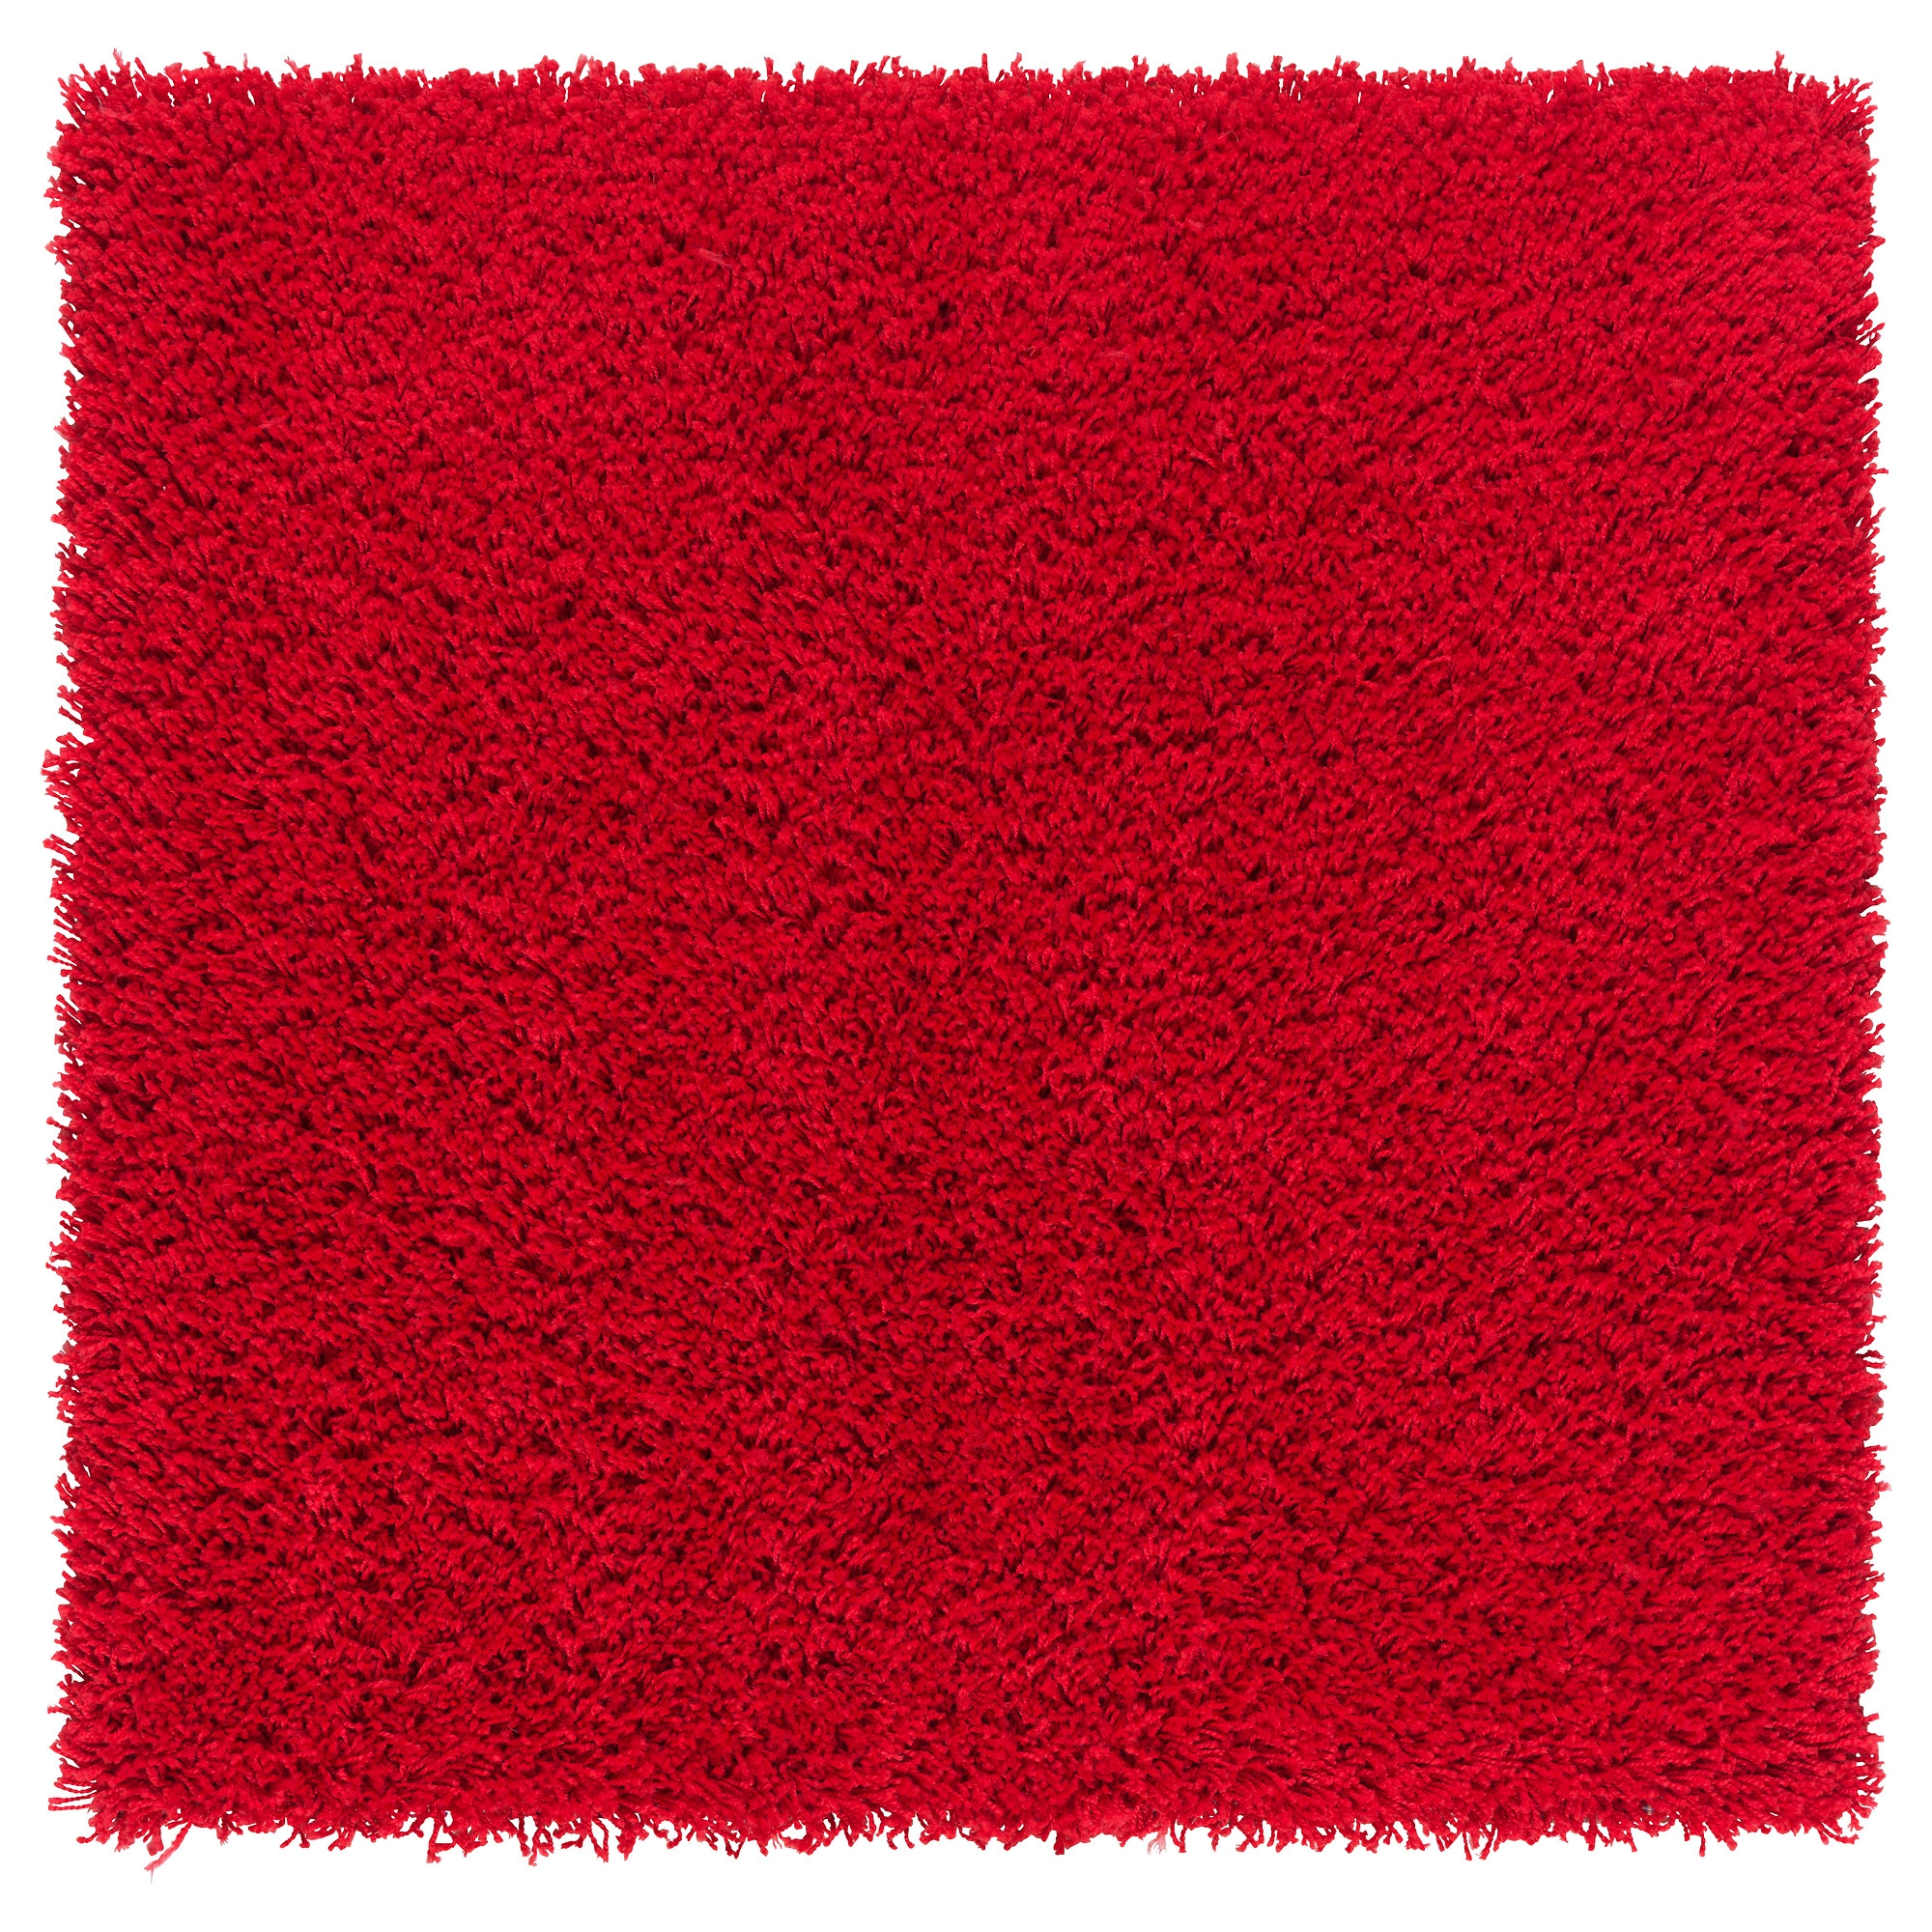 Small Red Rugs Roselawnlutheran Regarding Small Red Rugs (View 3 of 15)